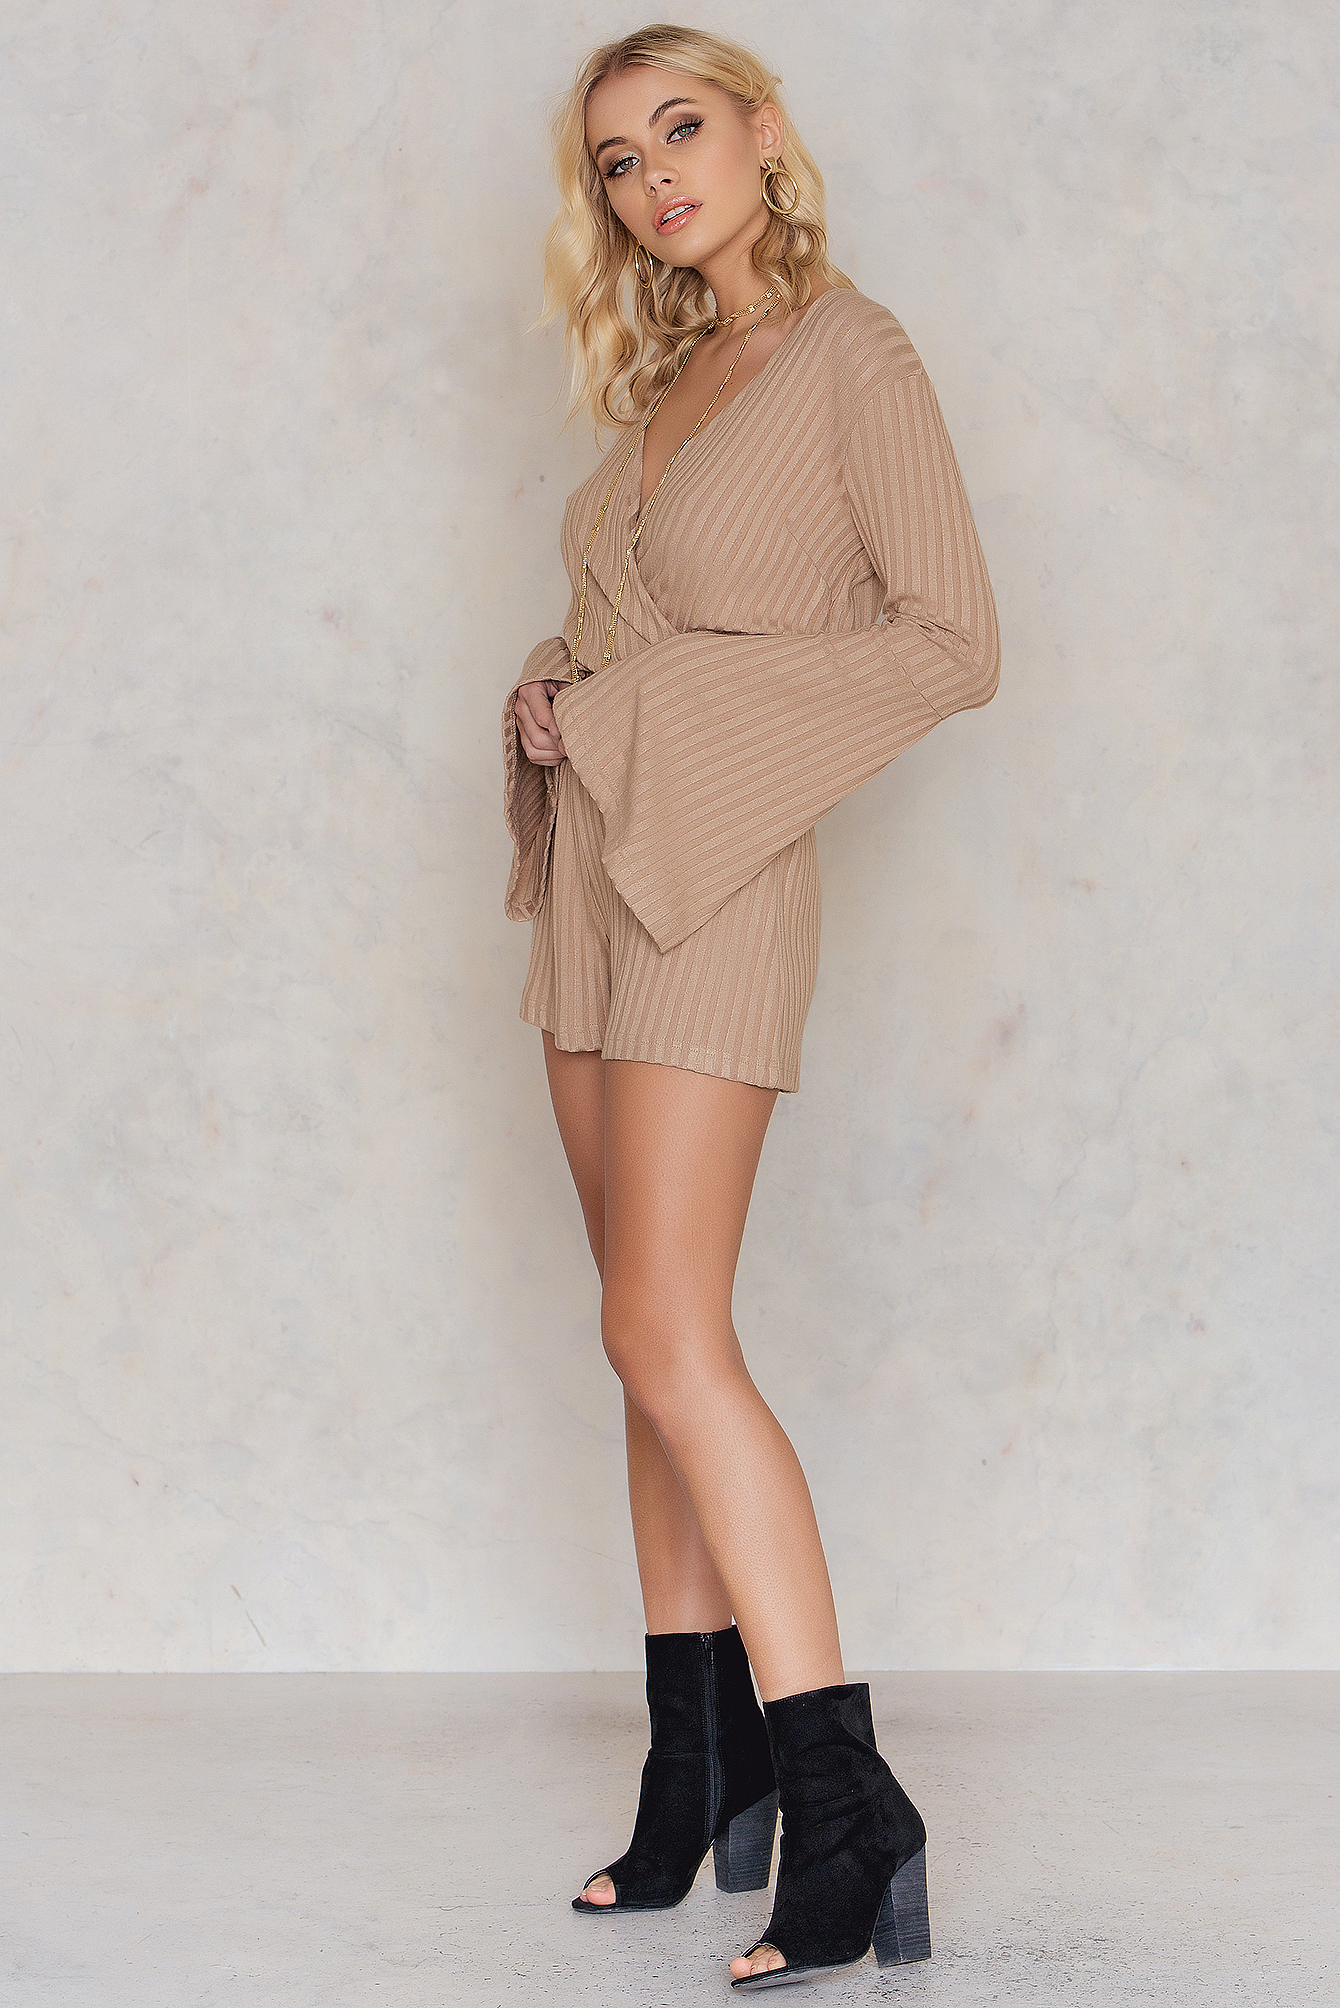 toffee Koko Playsuit